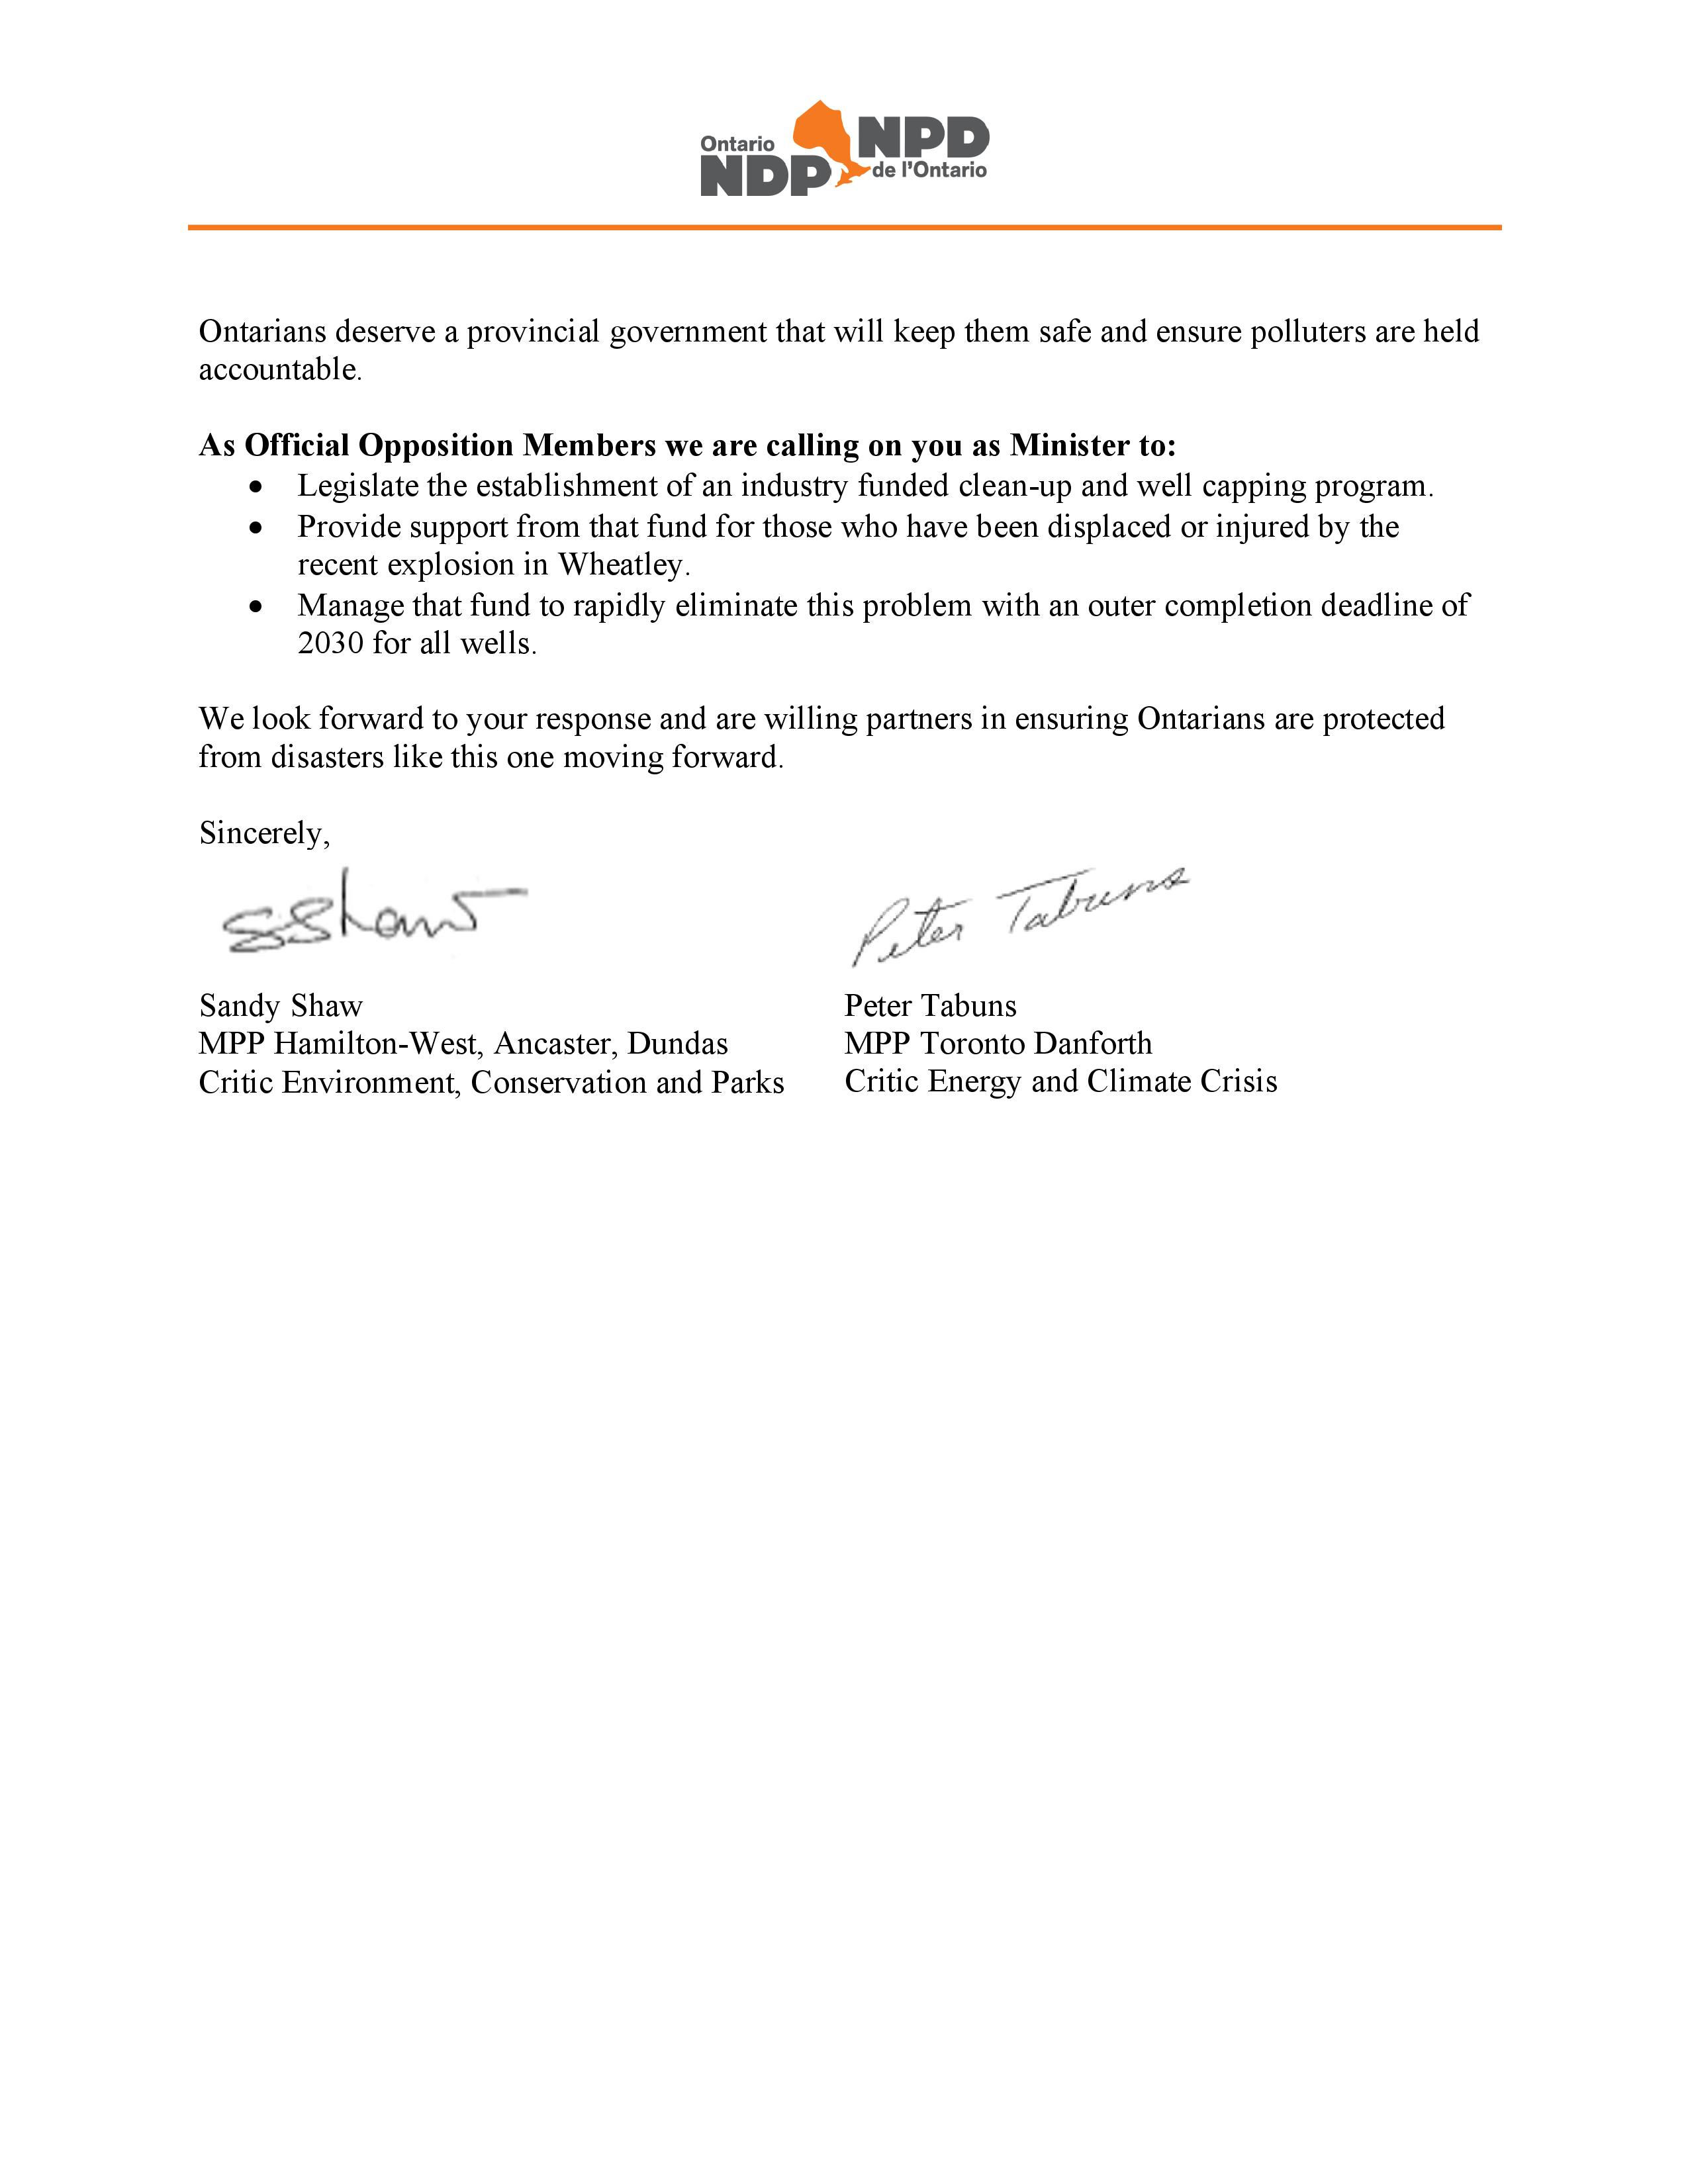 Wheatley_Explosion_-_Letter_to_Minister_Rickford-page-002.jpg